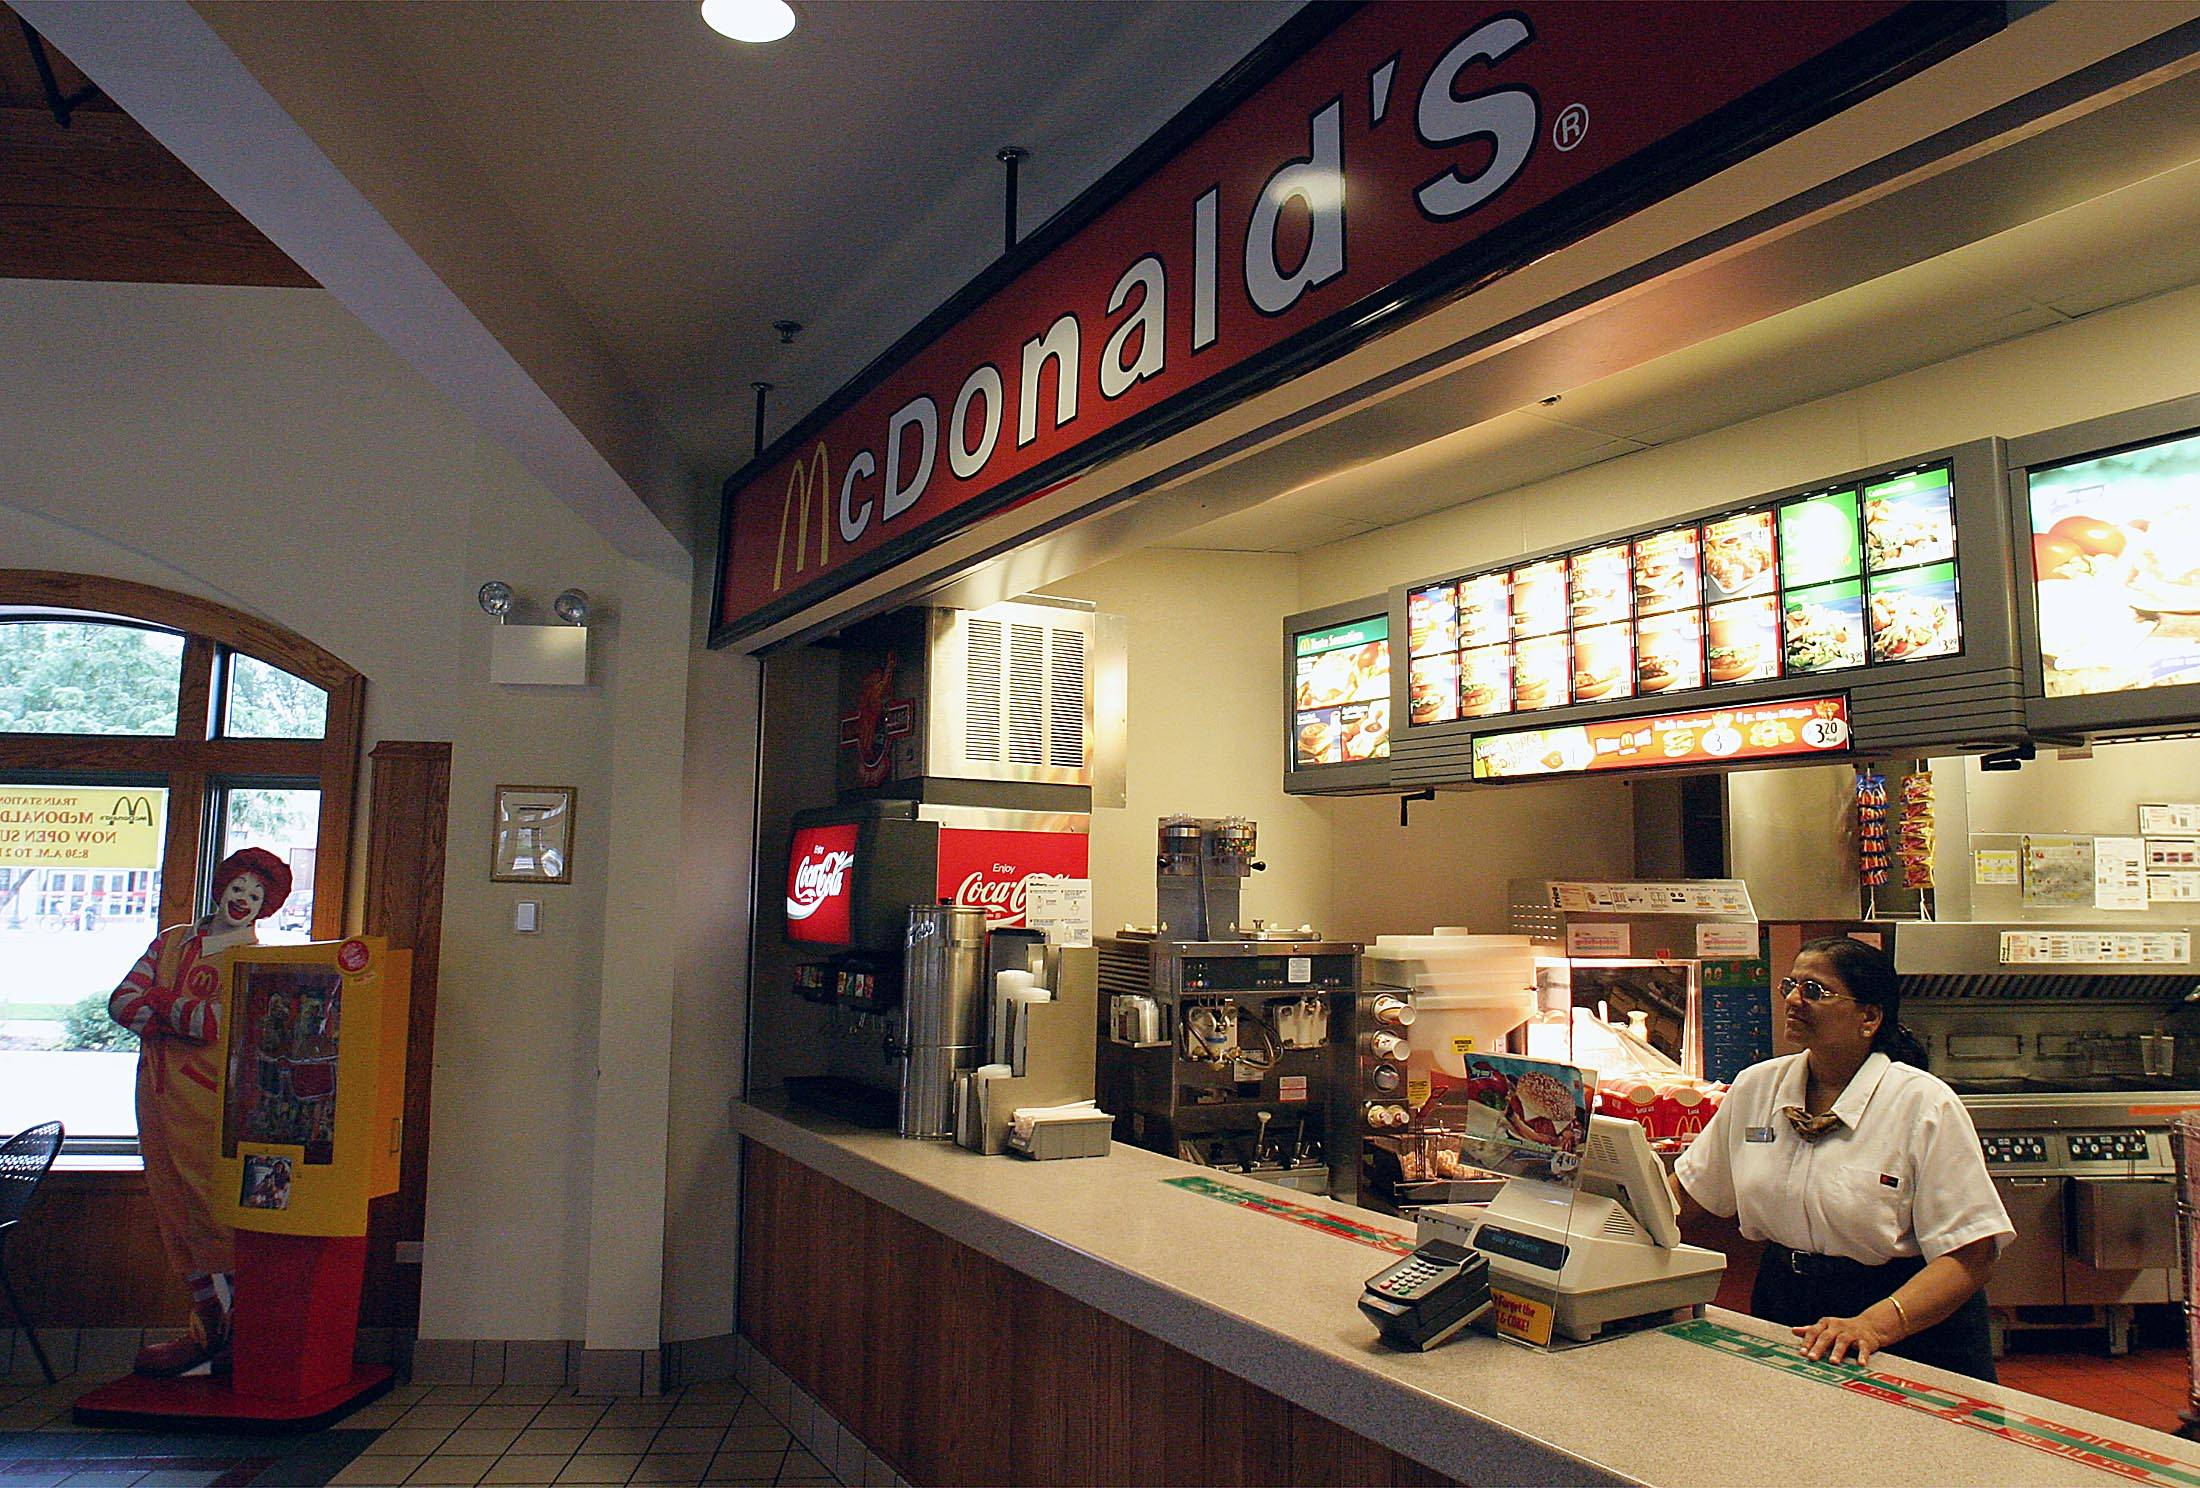 Oak Brook-based McDonald's is coming under intensifying pressure for labor practices at its U.S. restaurants. The National Labor Relations Board said Tuesday that the world's biggest hamburger chain could be named as a joint employer in several complaints regarding worker rights at franchise-owned restaurants. The decision is pivotal because it could expose McDonald's Corp. to liability for management practices in those locations.